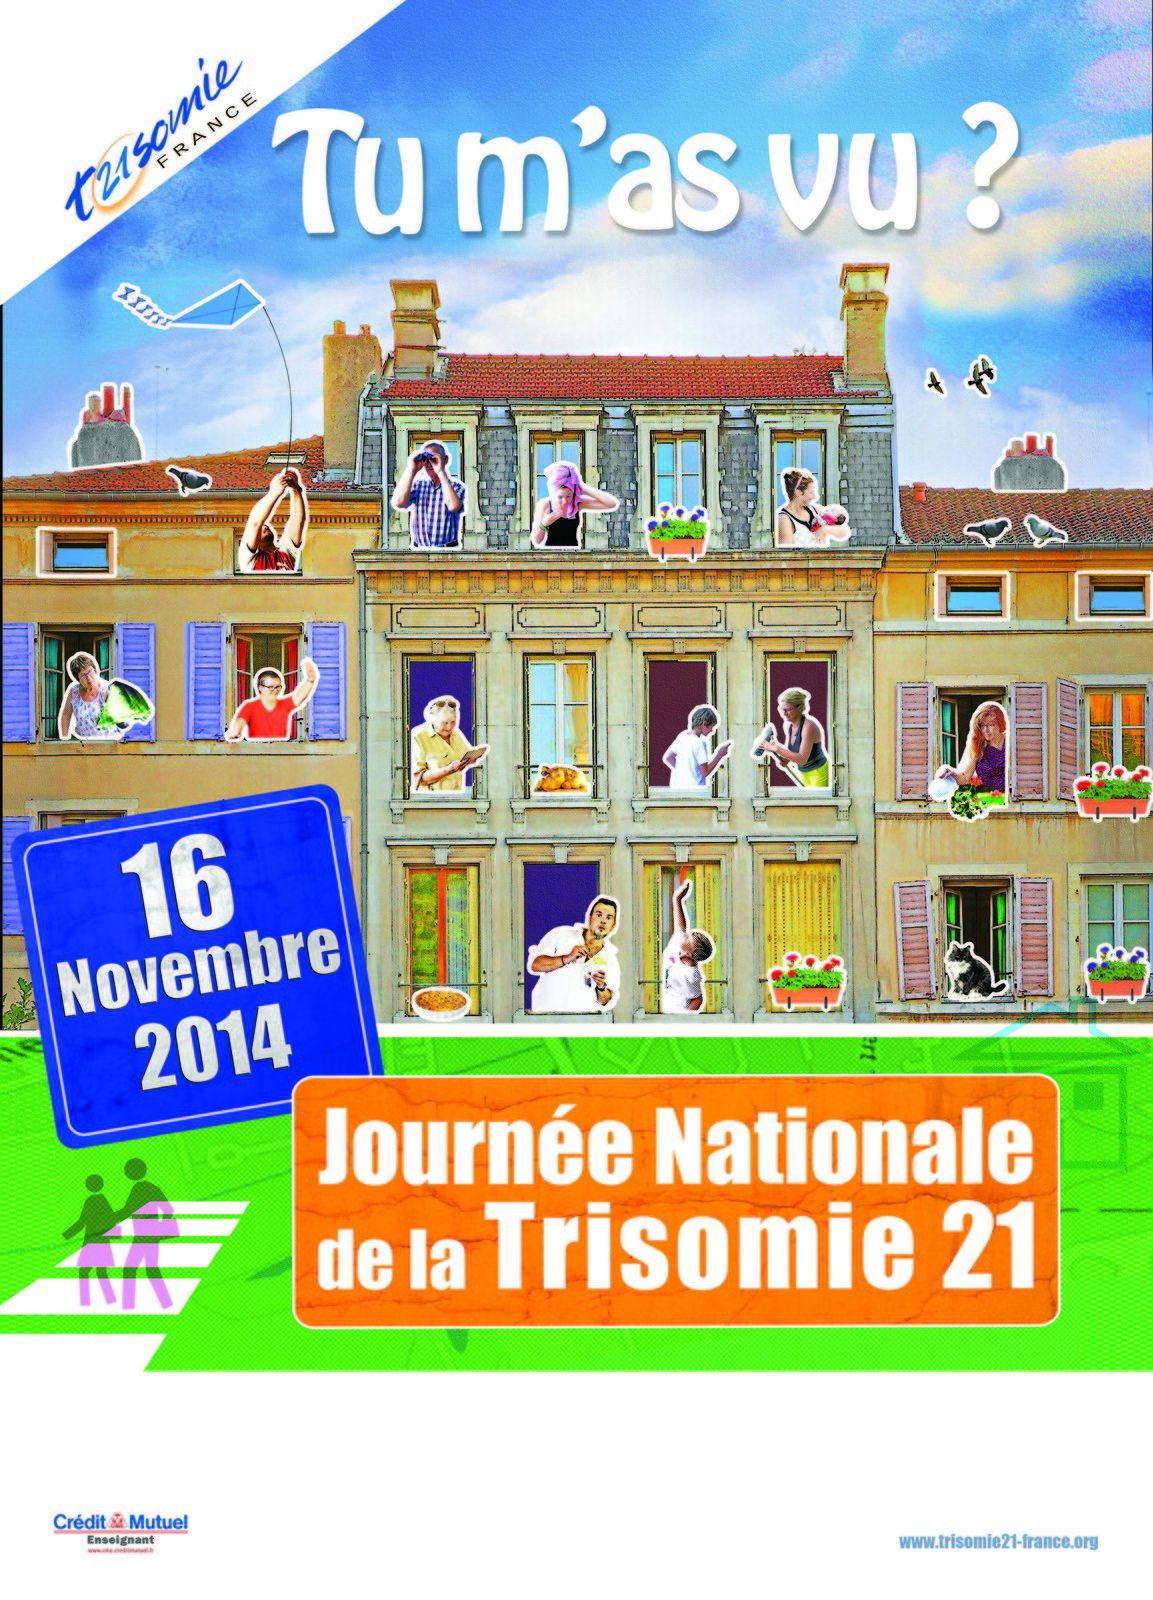 Journée nationale de la Trisomie